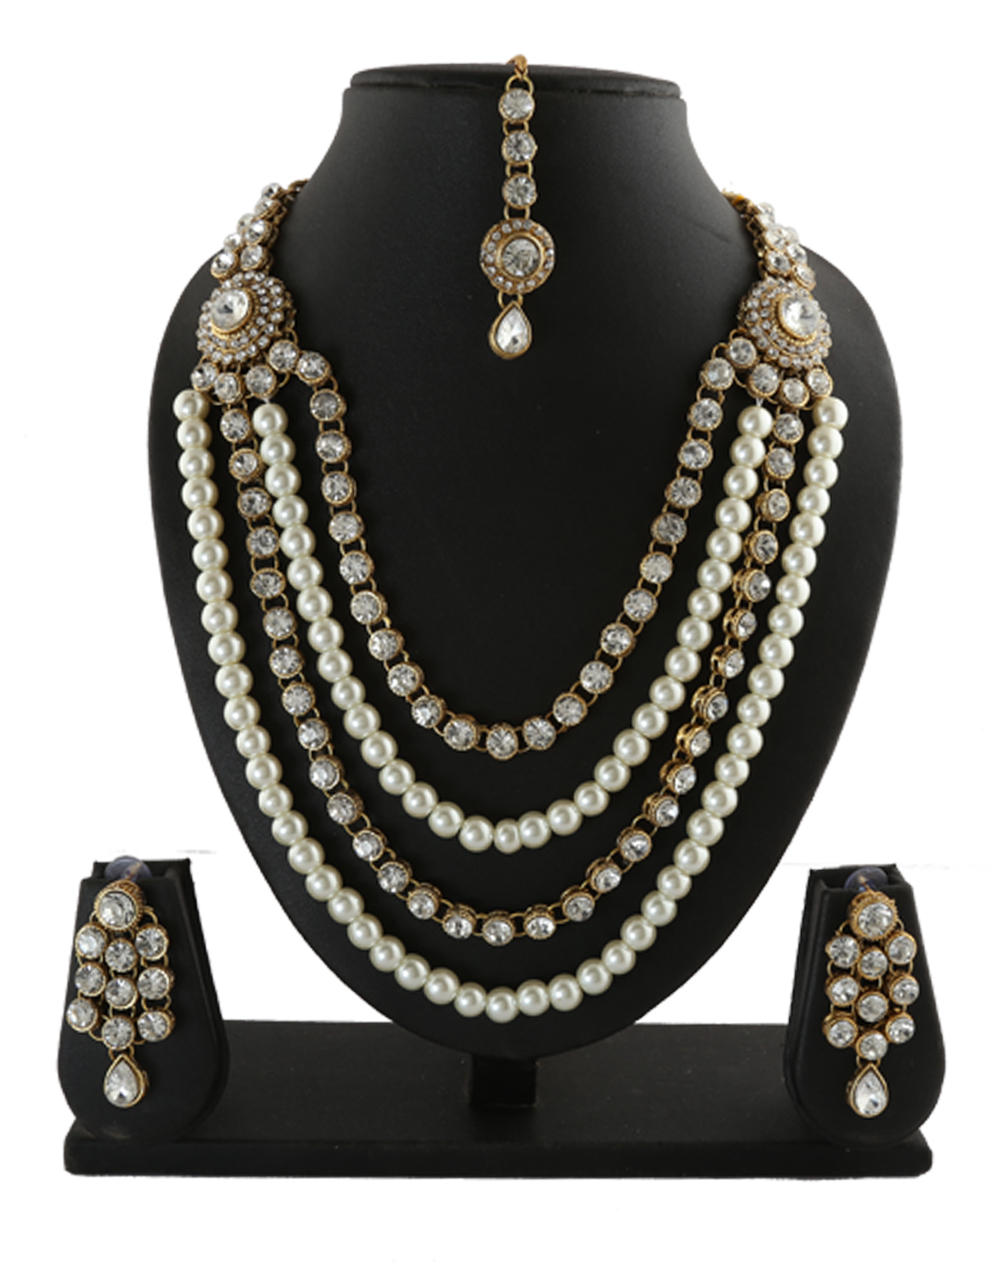 Gold Finish Fashionable Traditional Layered Necklace Set Studded With Stones And Pearl Necklace Earring Set